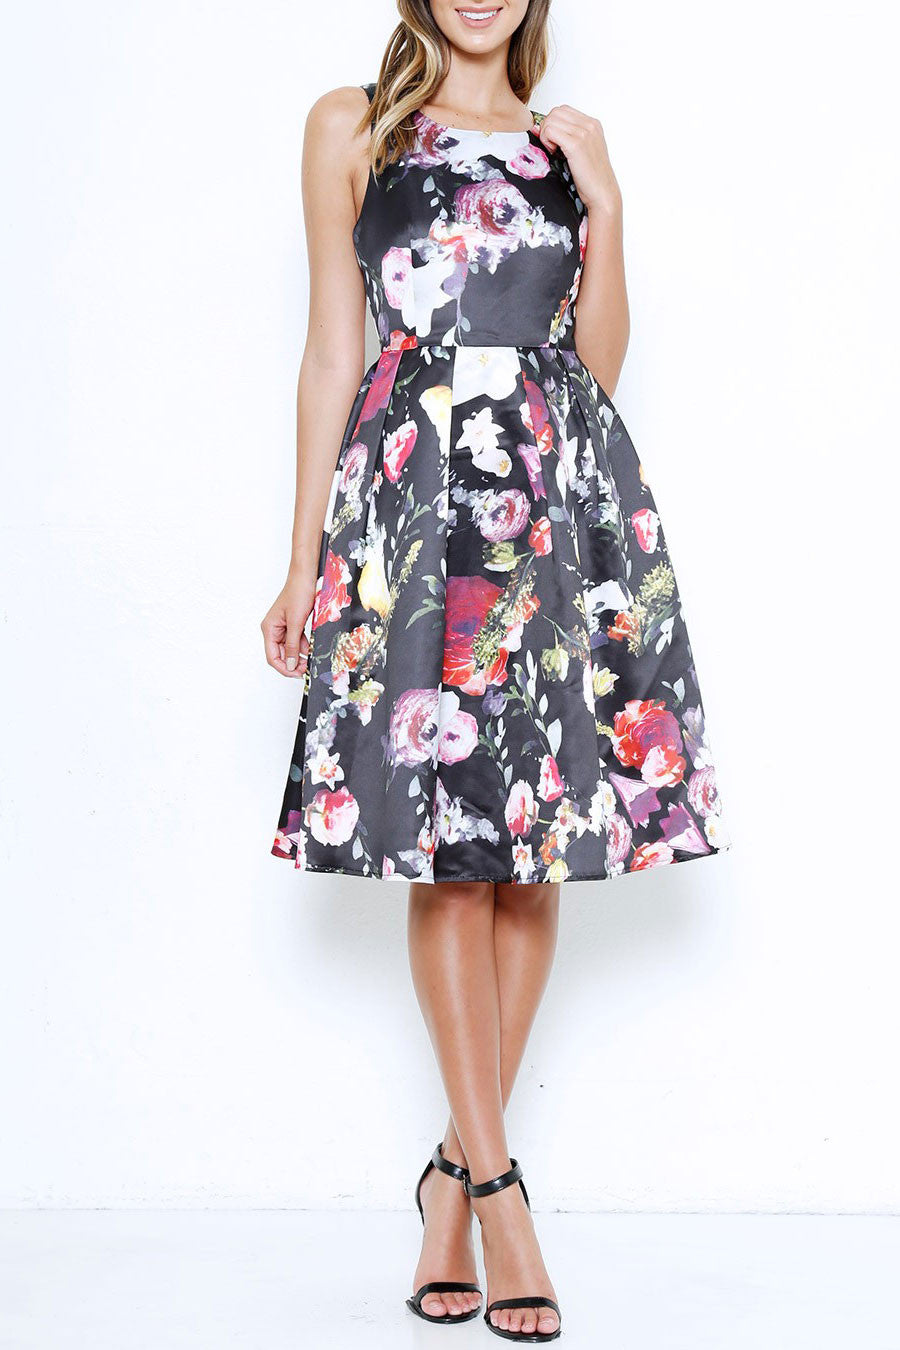 Memdalet women 39 s sleeveless black floral print full for Black floral dress to a wedding